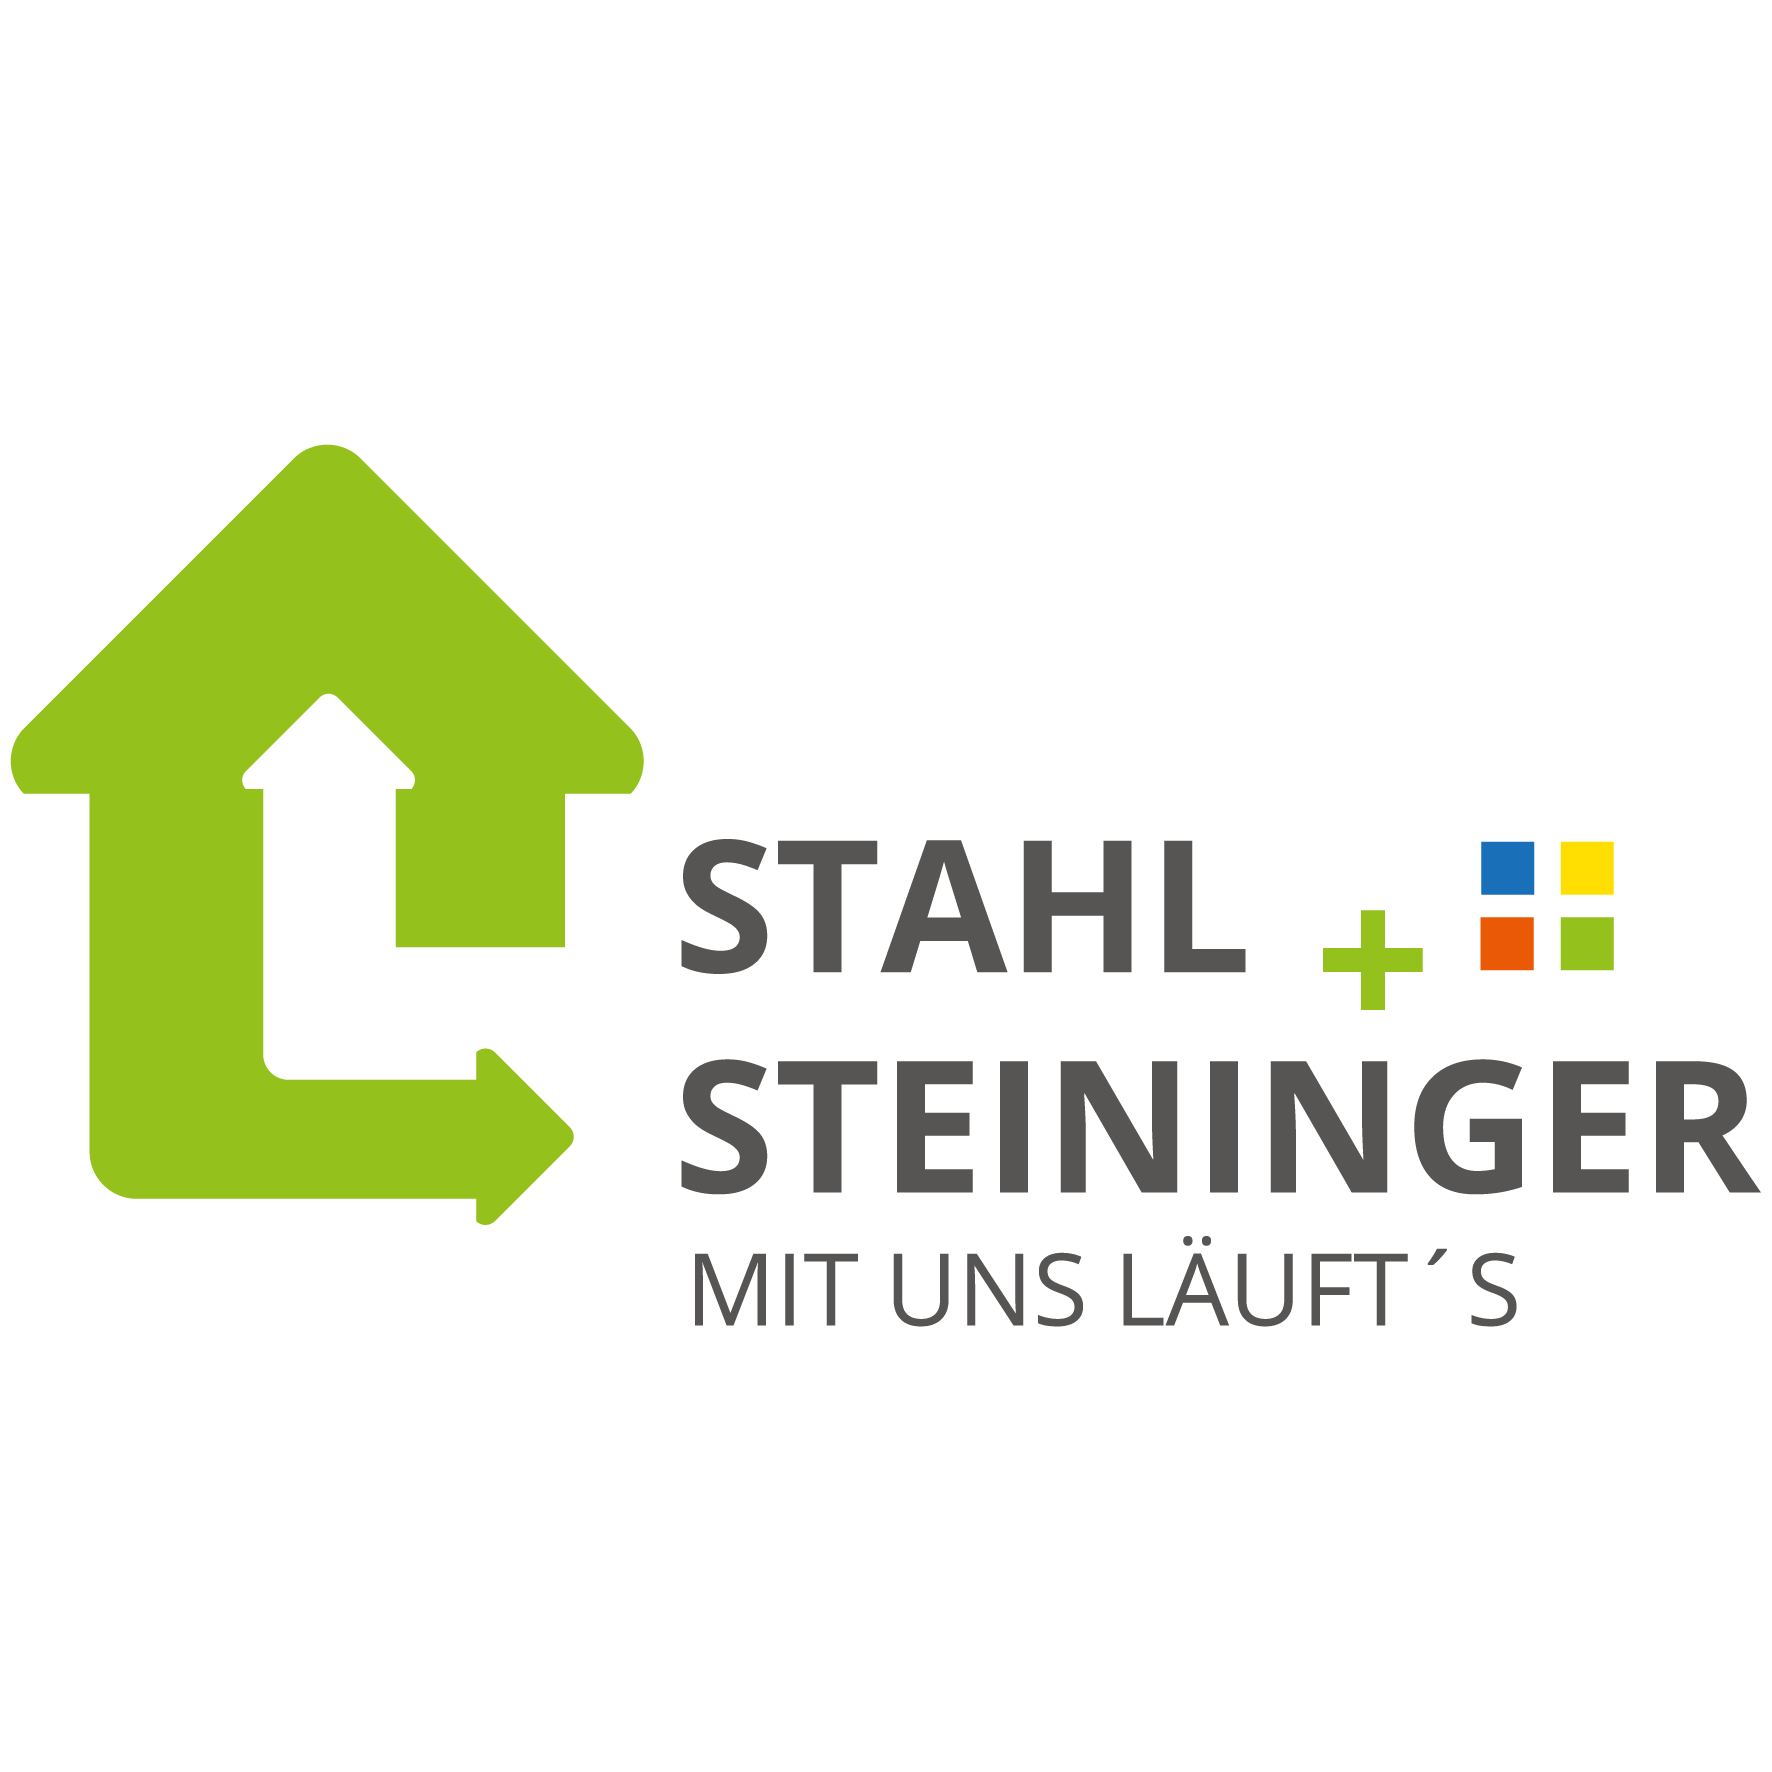 Bild zu Stahl + Steininger GmbH & Co. KG in Stephansposching